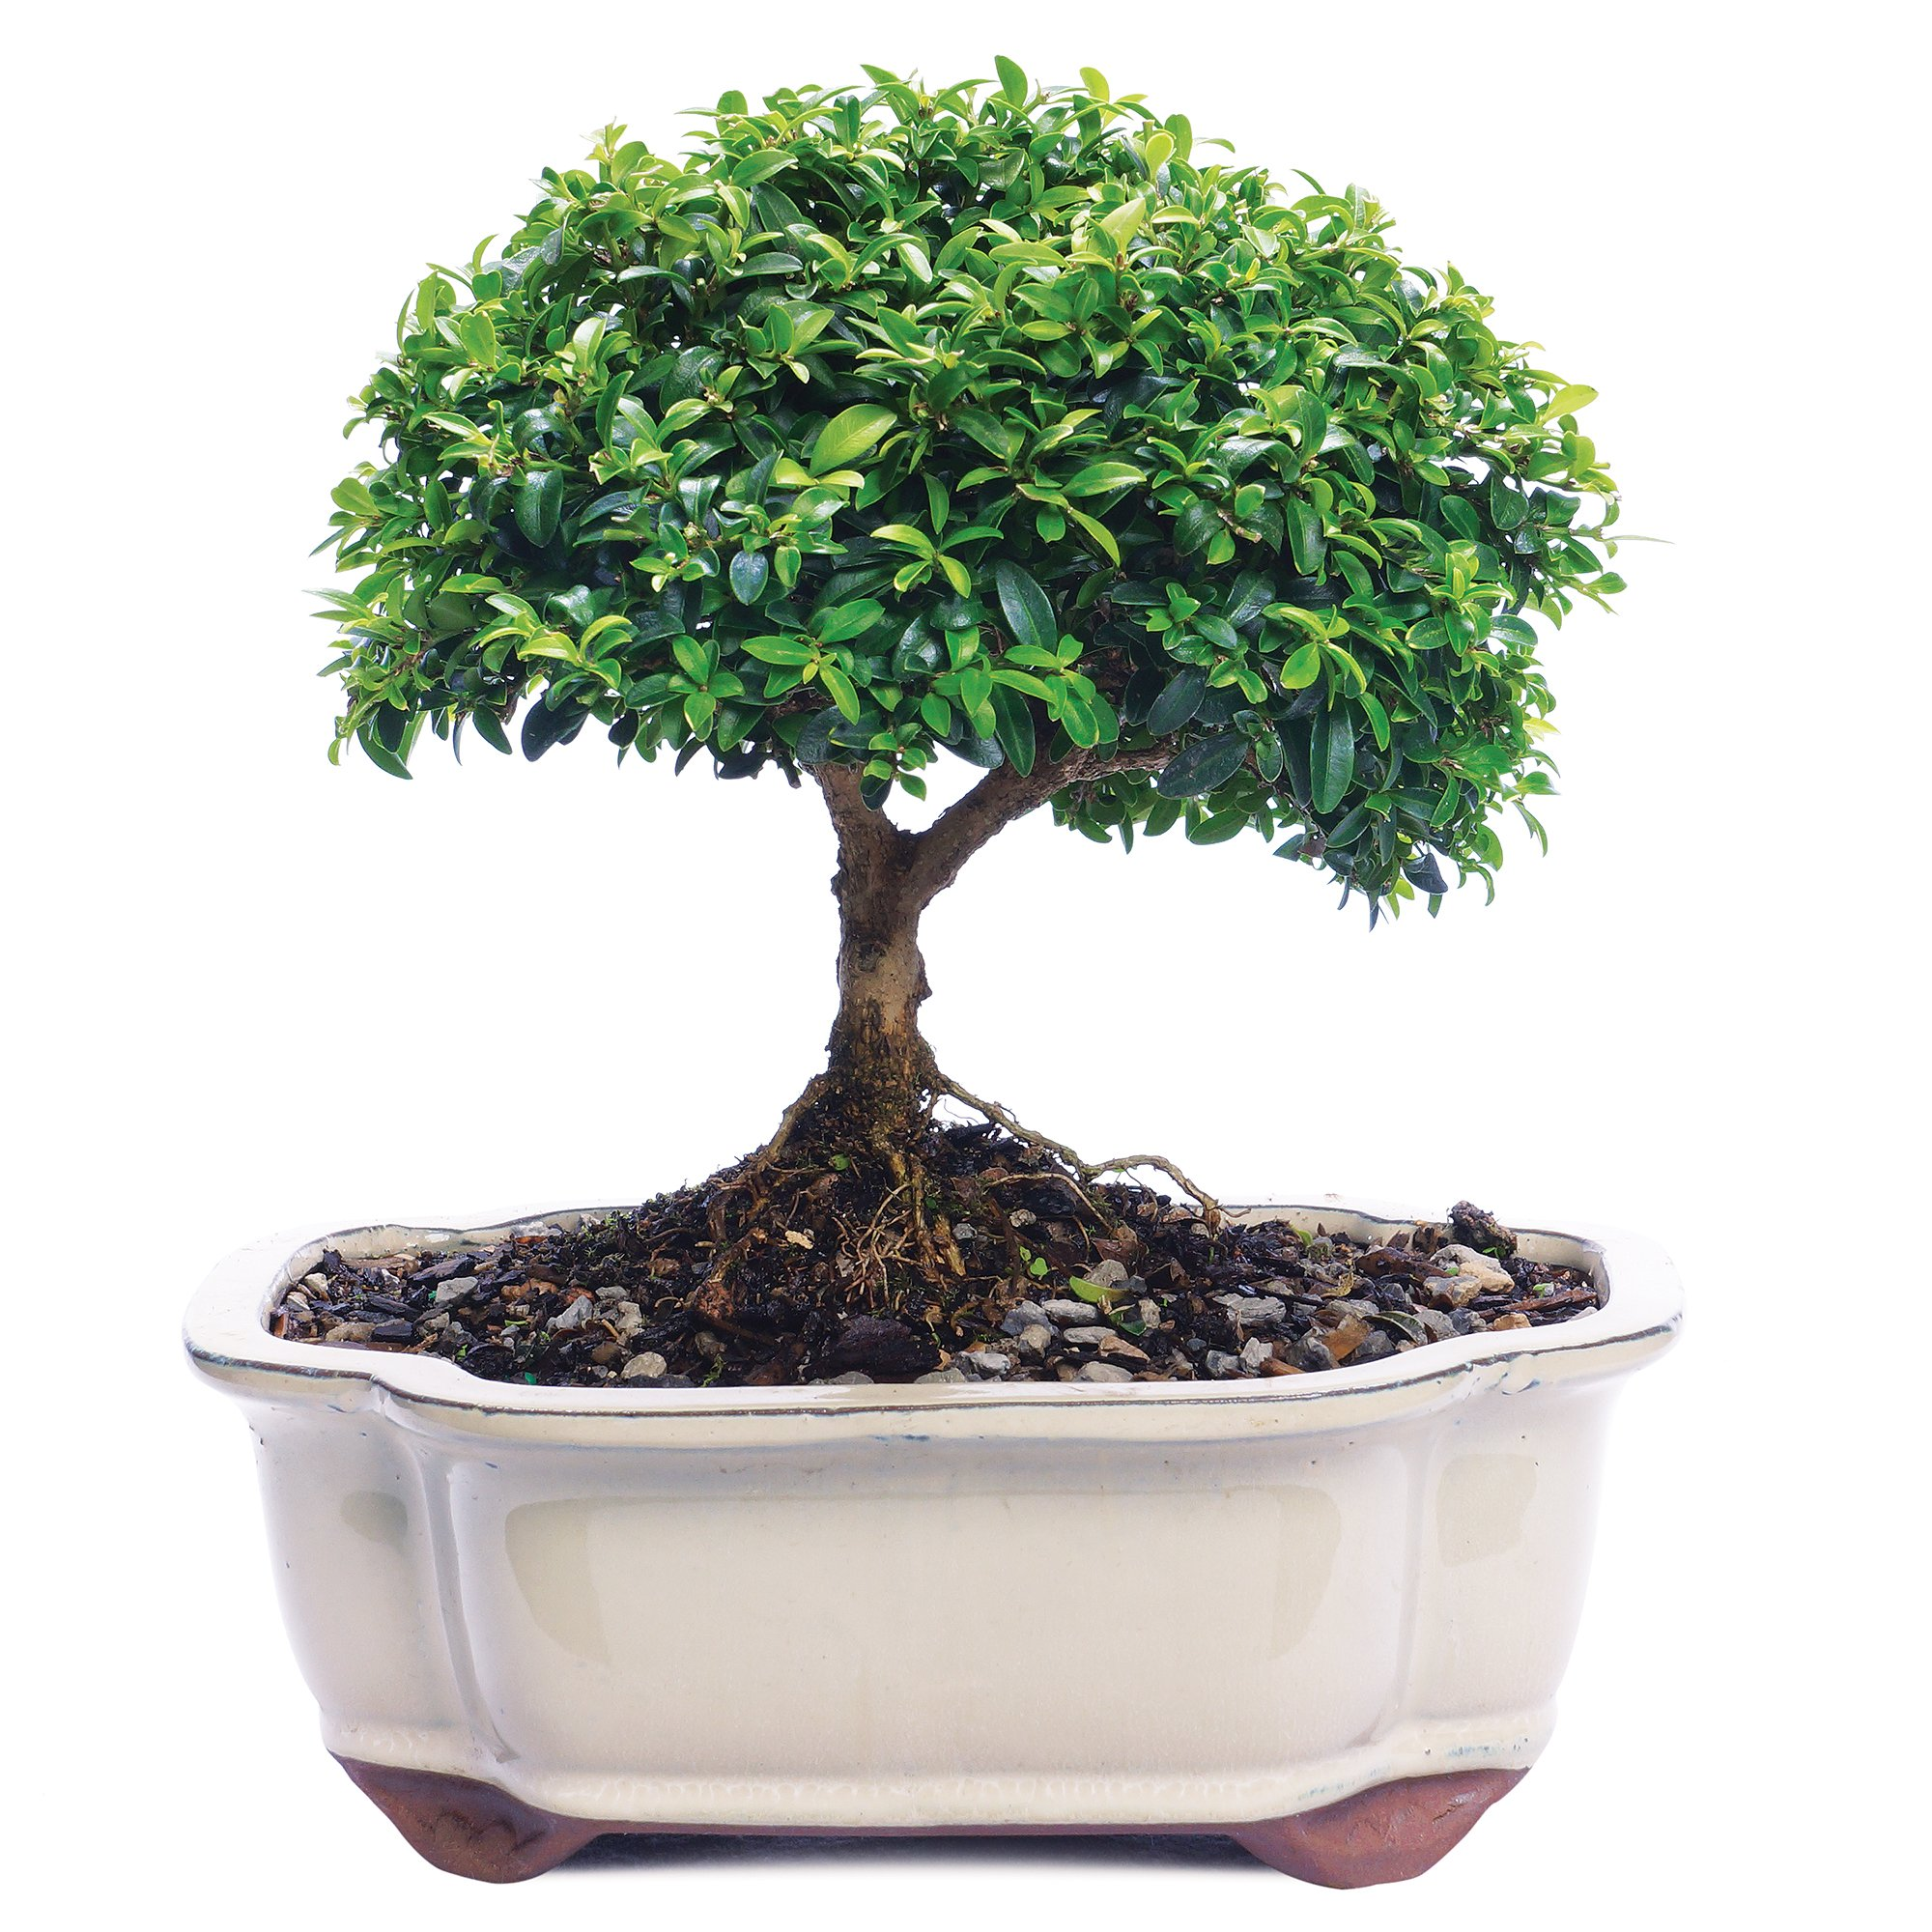 Brussel's Live Kingsville Boxwood Outdoor Bonsai Tree - 10 Years Old; 5'' to 9'' Tall with Decorative Container